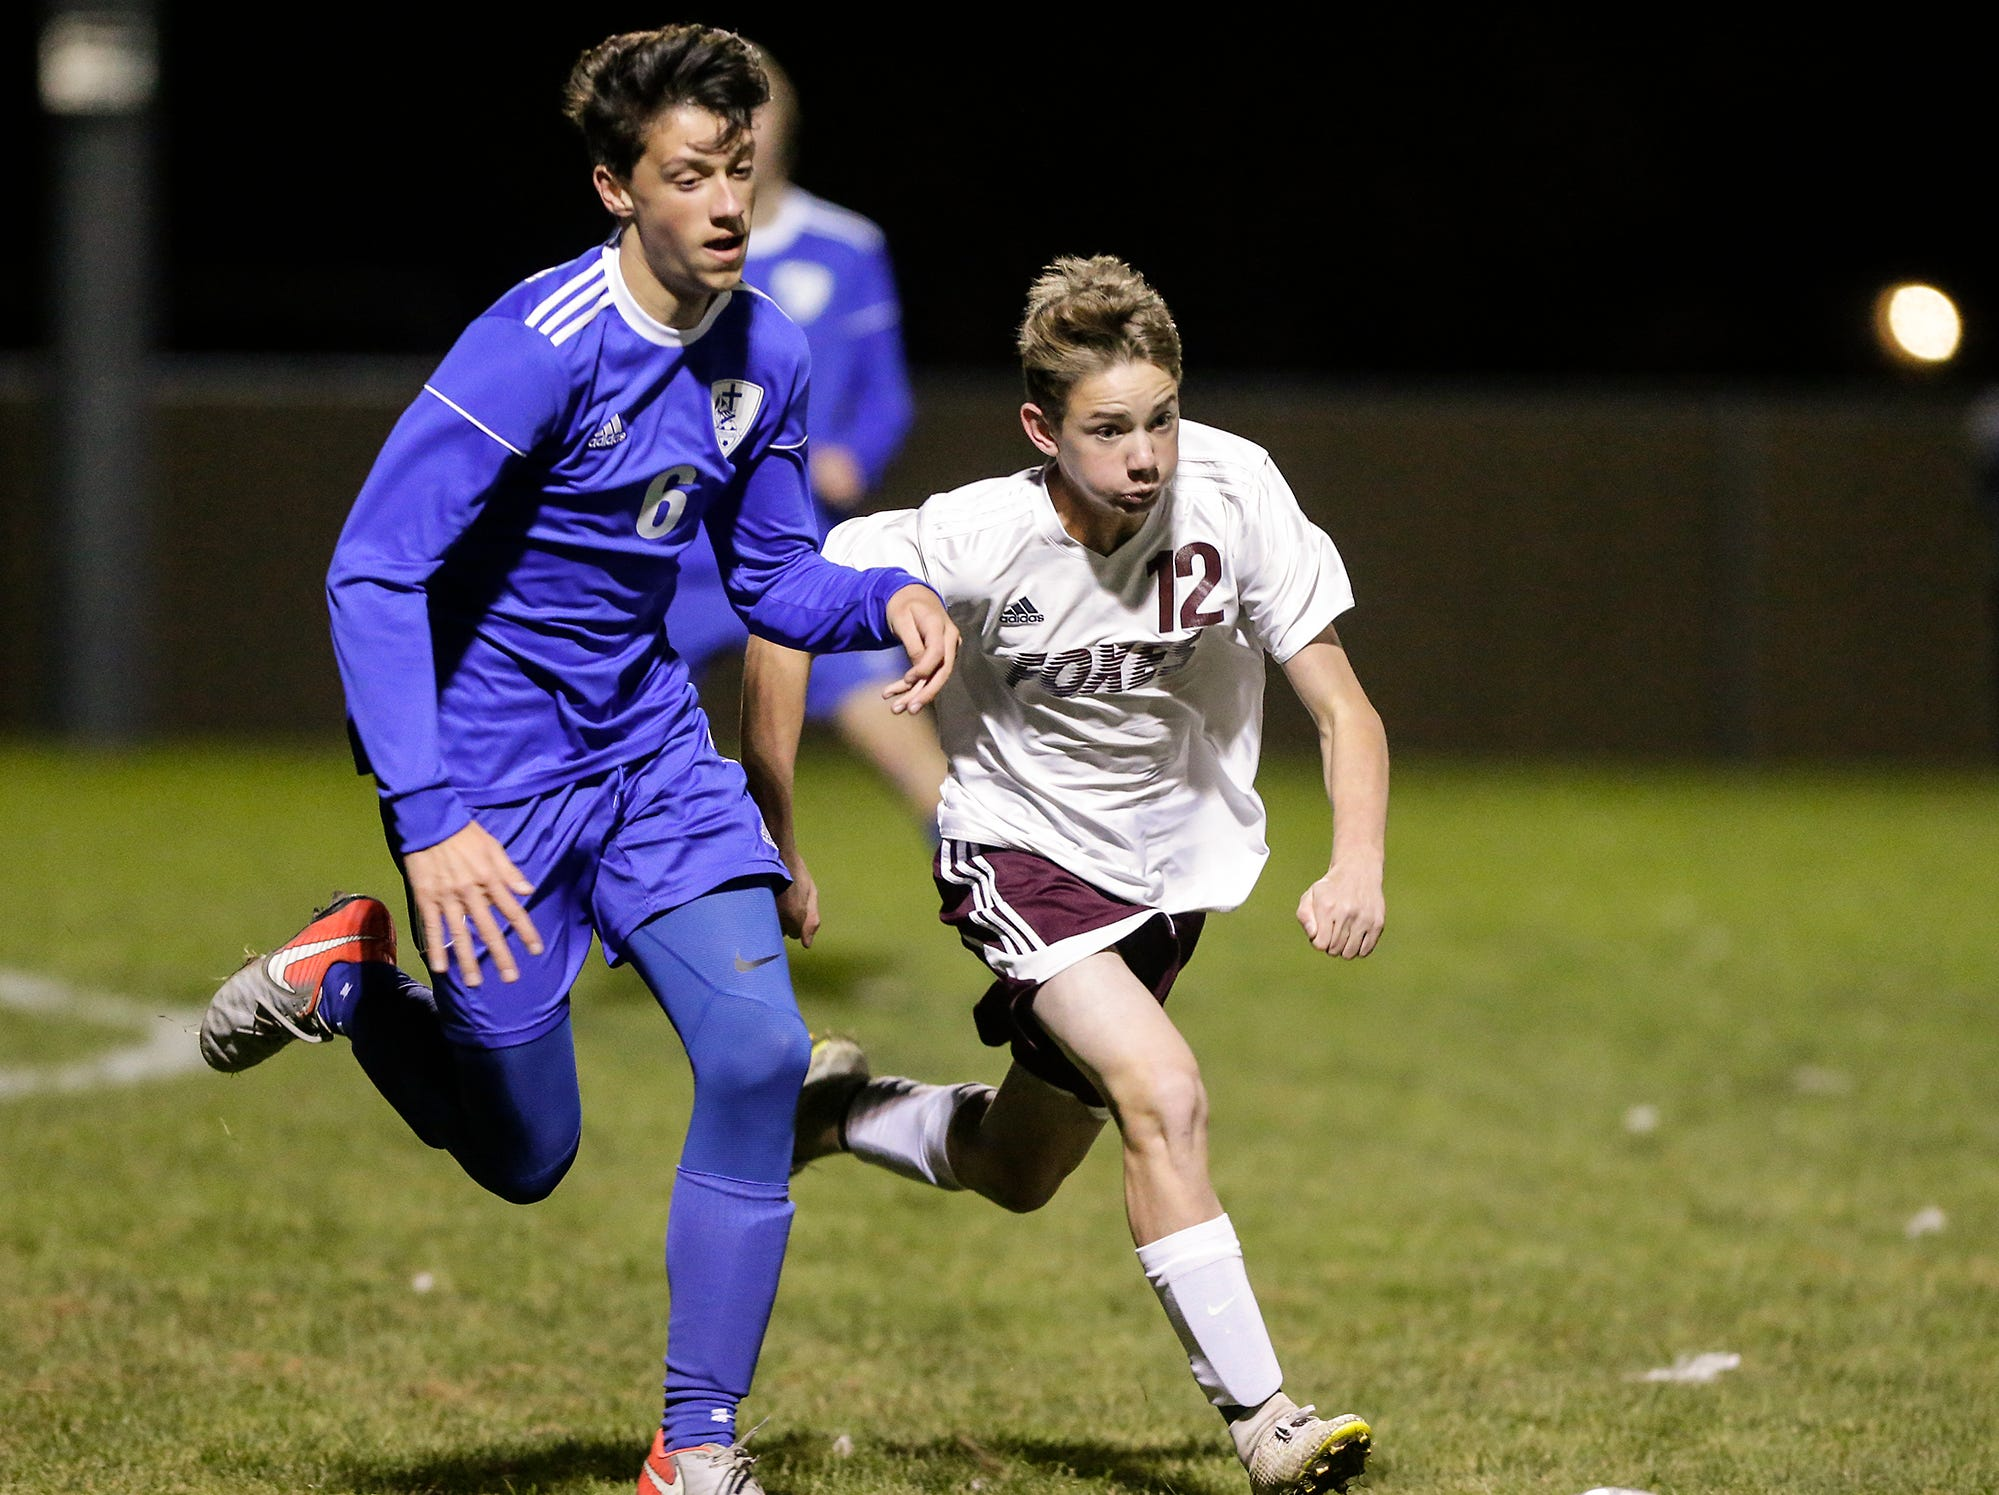 Winnebago Lutheran Academy soccer's Colin Knoblock and Omro High School's Kaden Besaw race for the ball during their WIAA regional playoff game Thursday, October 18, 2018 in Fond du Lac, Wisconsin. Doug Raflik/USA TODAY NETWORK-Wisconsin